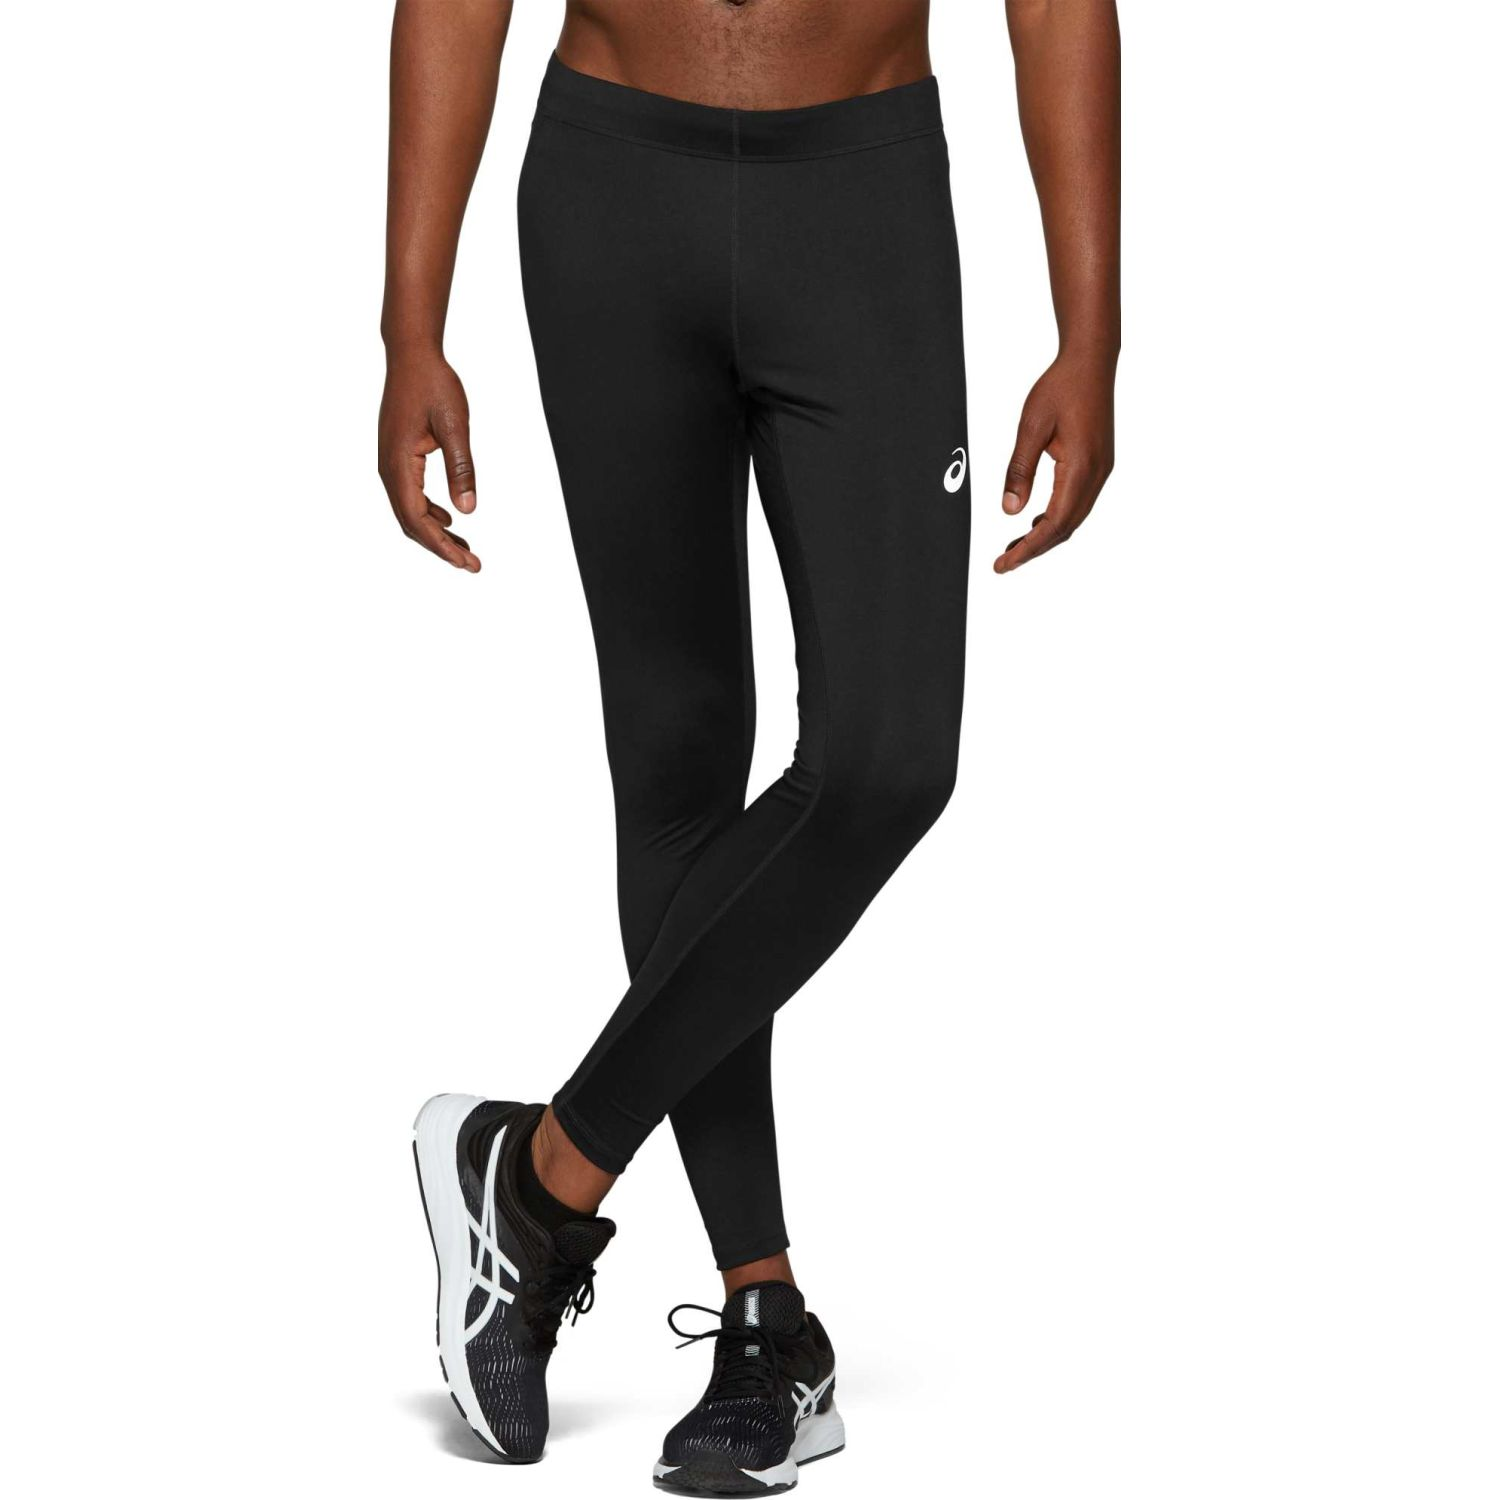 Asics Silver Tight Performance Black Negro Pantalones deportivos